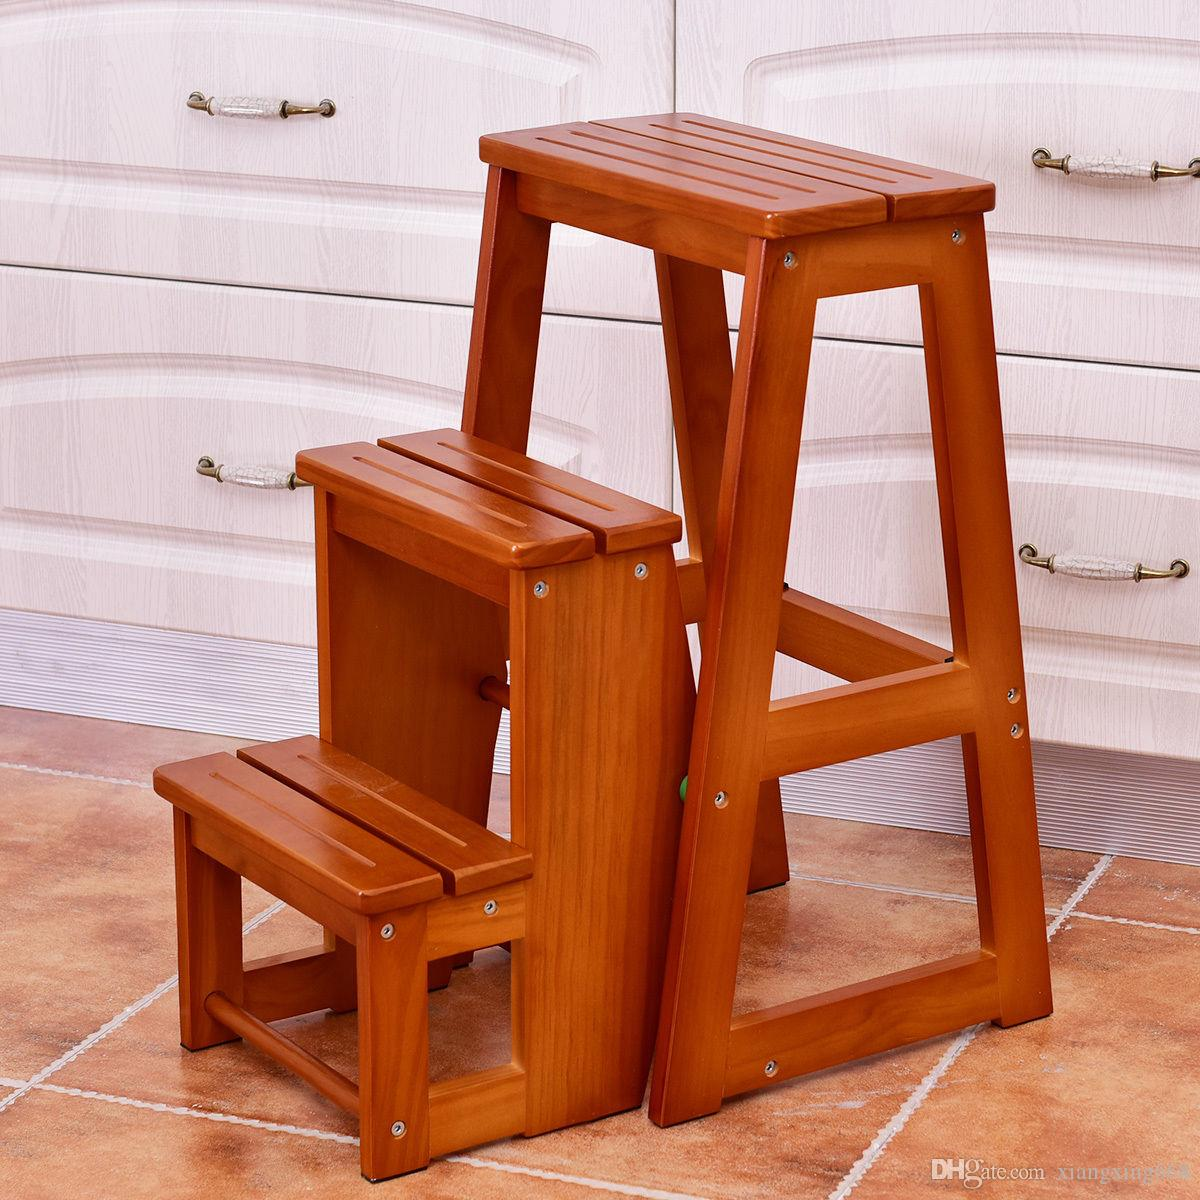 2021 Wood Step Stool Folding 3 Tier Ladder Chair Bench Seat Utility Multi Functional From Xiangxing668 79 89 Dhgate Com